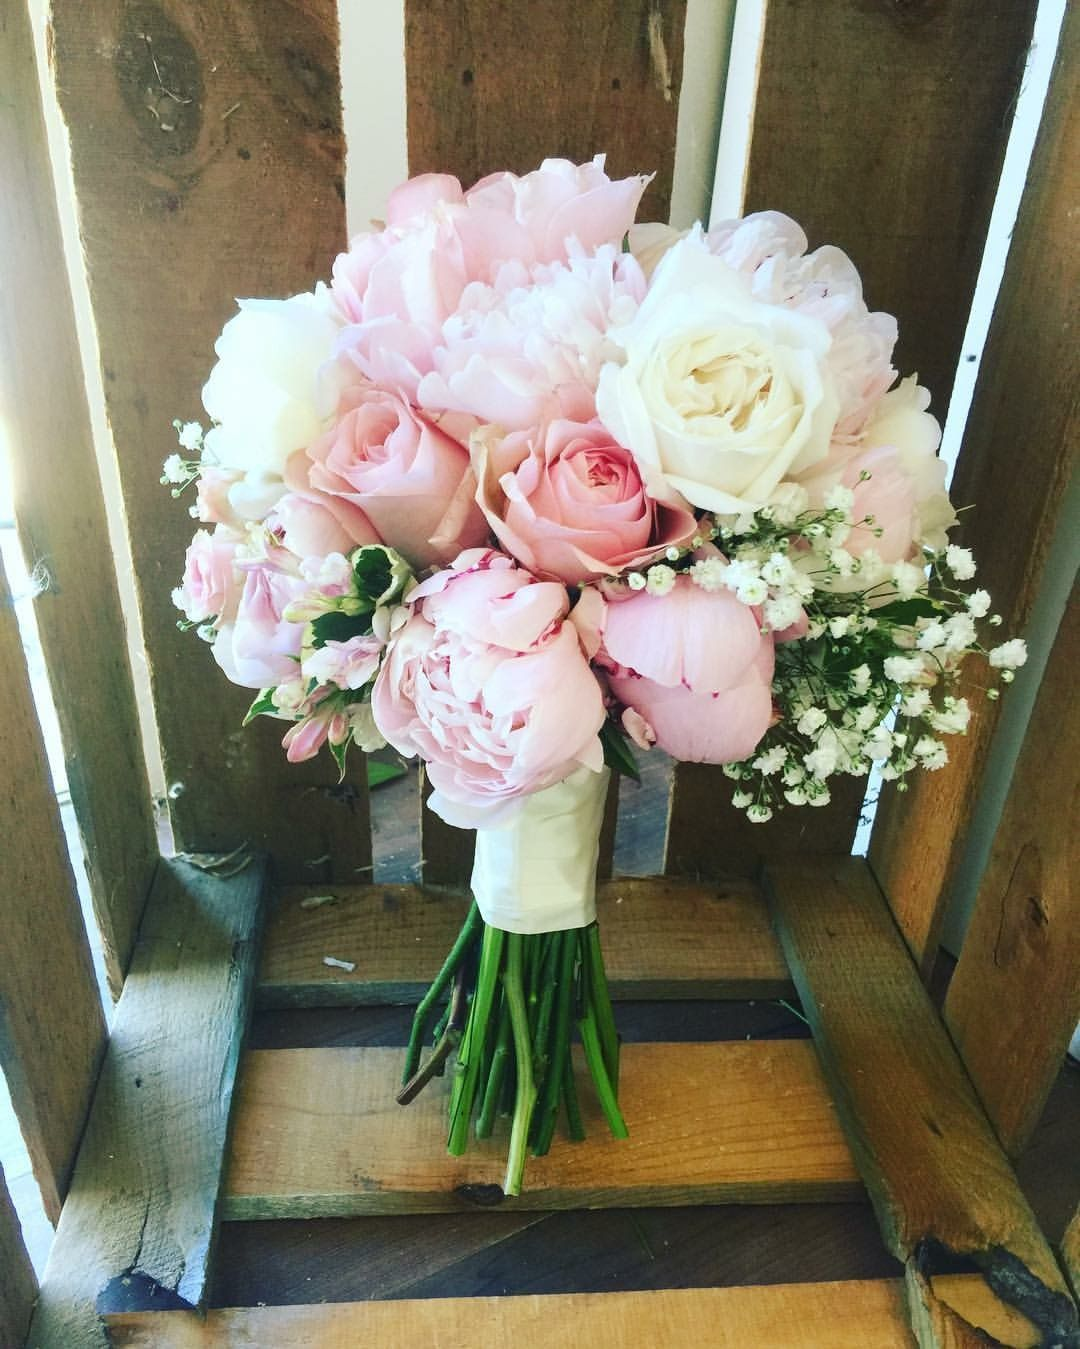 Peony Inspired Wedding Ideas: White And Pink Brides Bouquet Peonies David Austin Roses